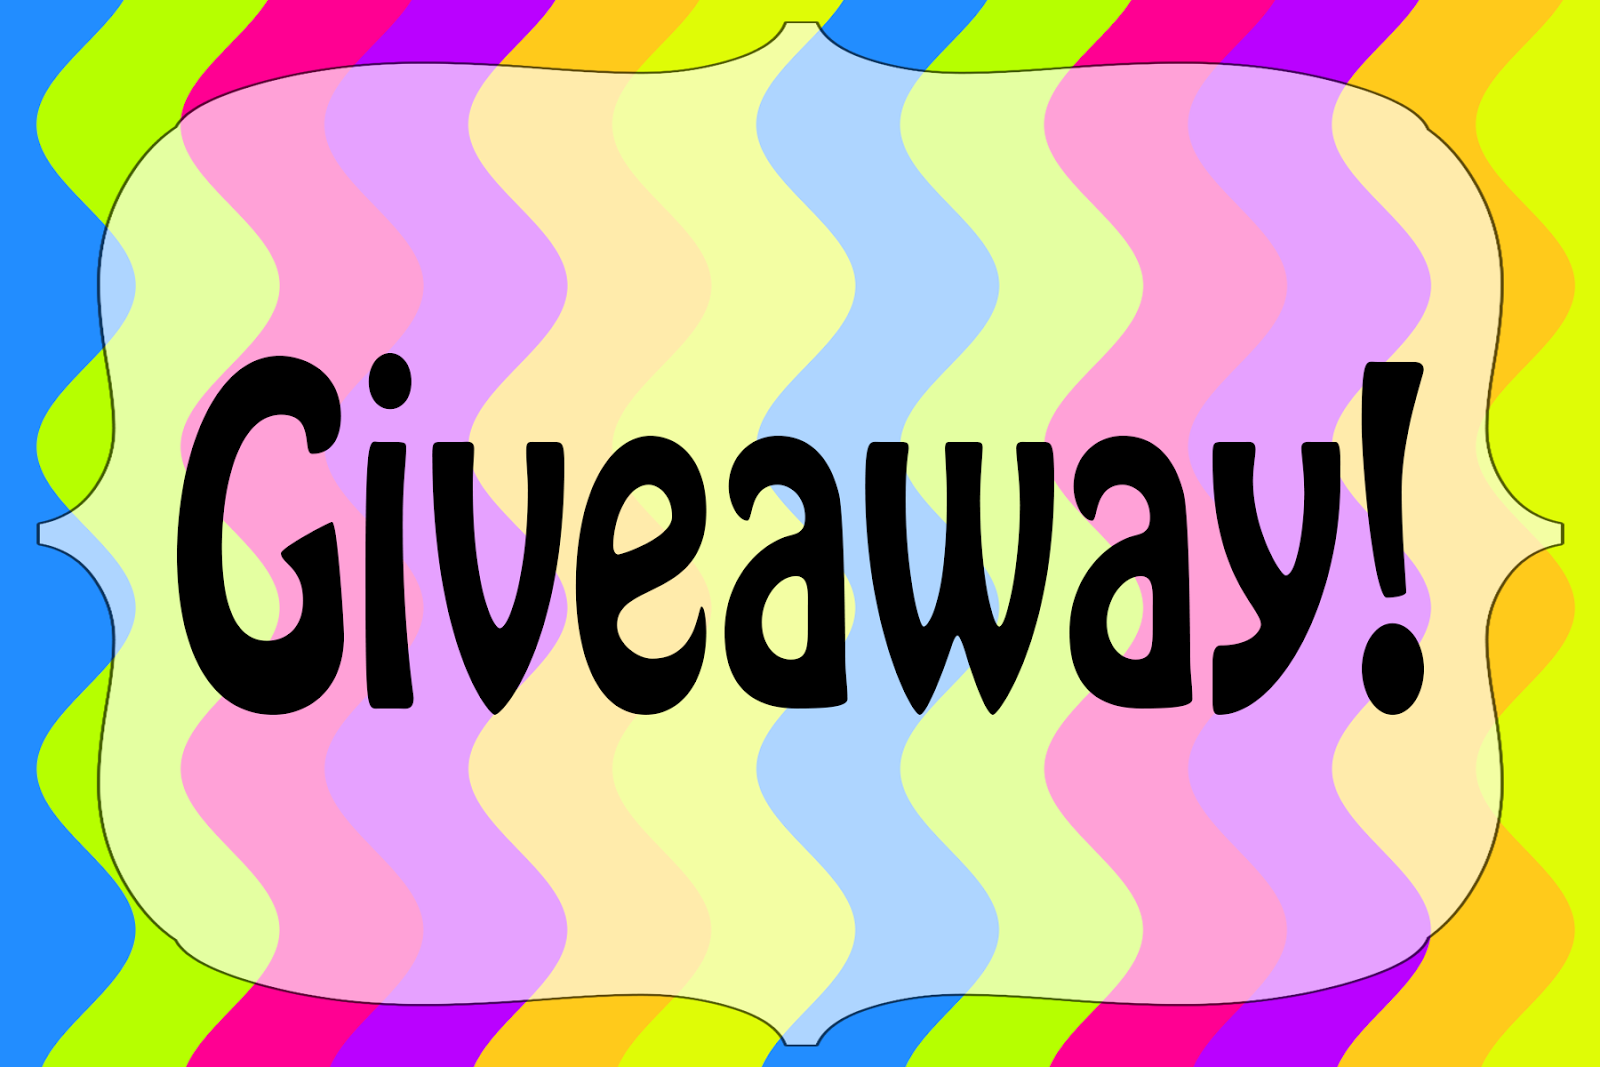 29 single nigerian giveaway naijasinglegirl for New home giveaway